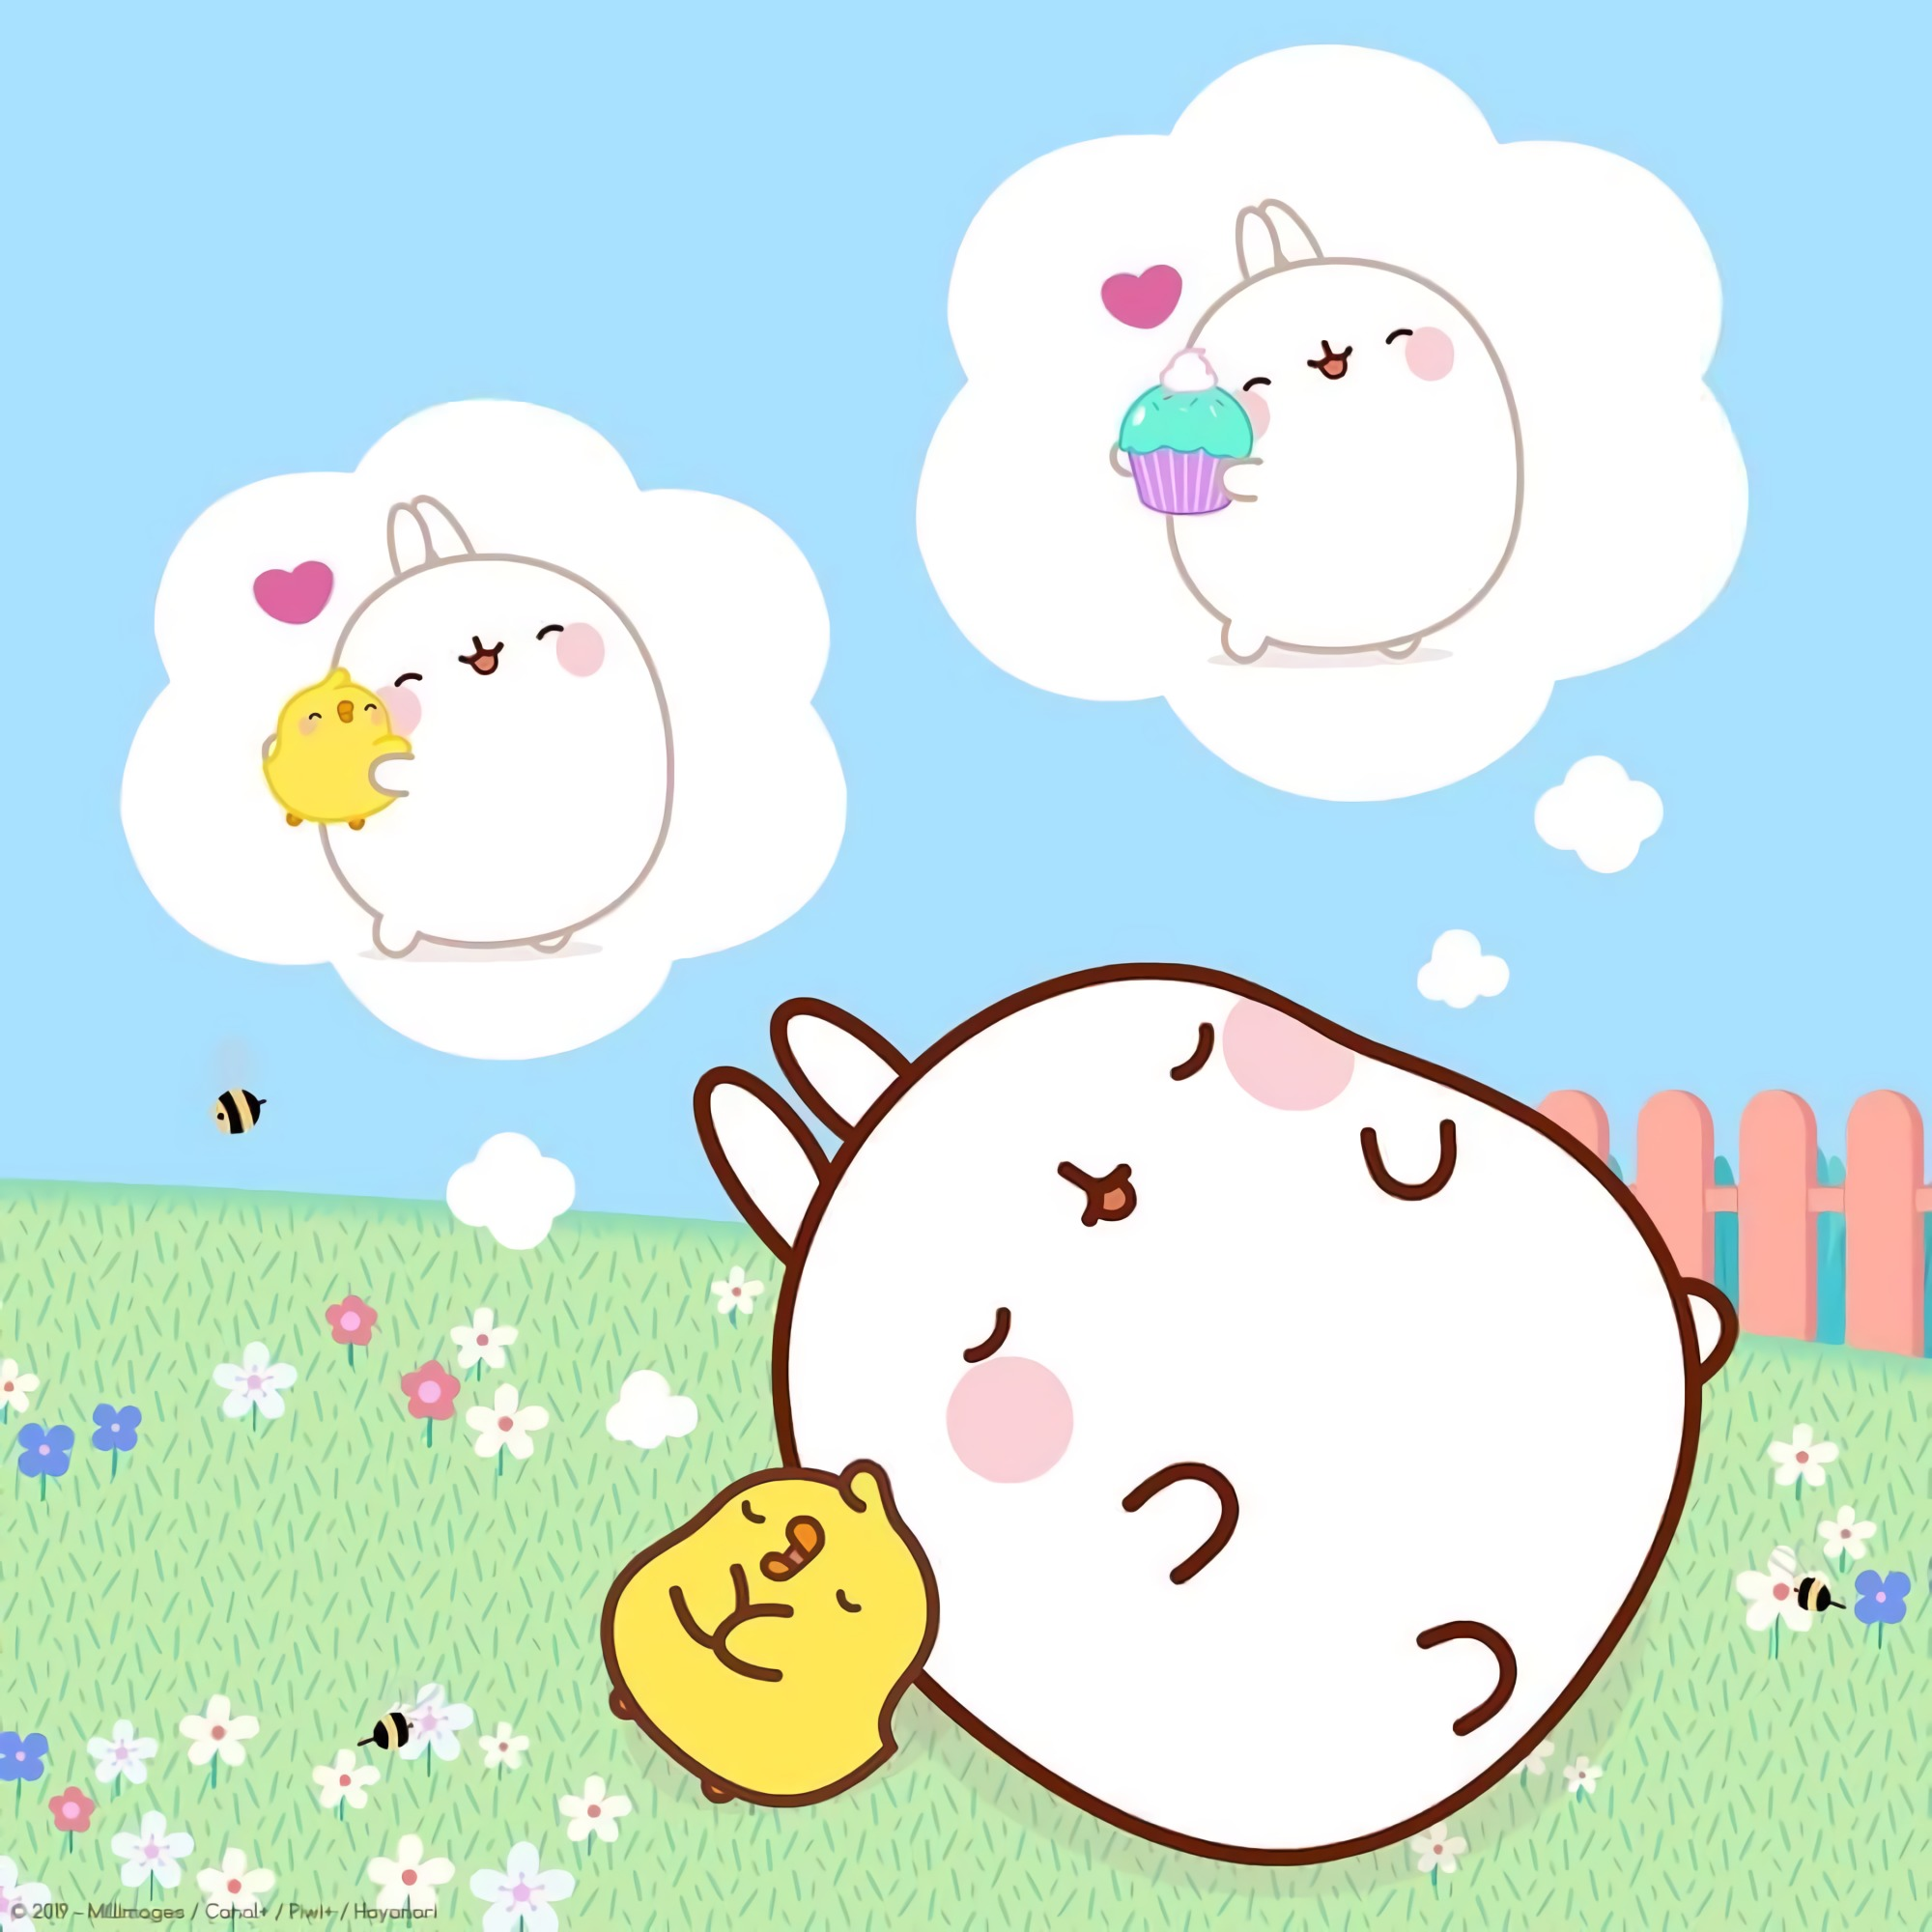 Happy World Dream Day! : molang.